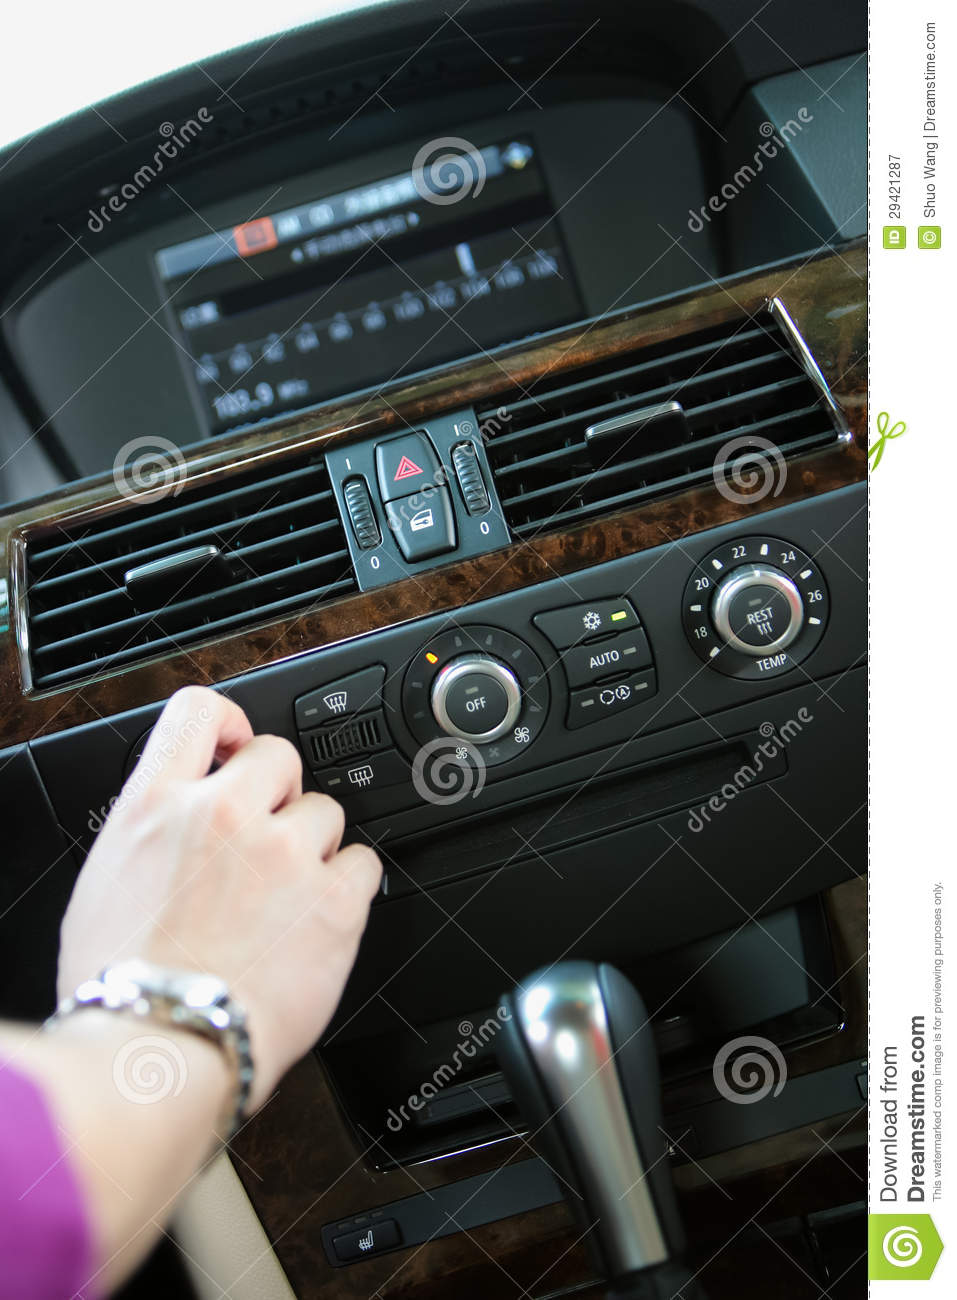 Tuning Radio in car